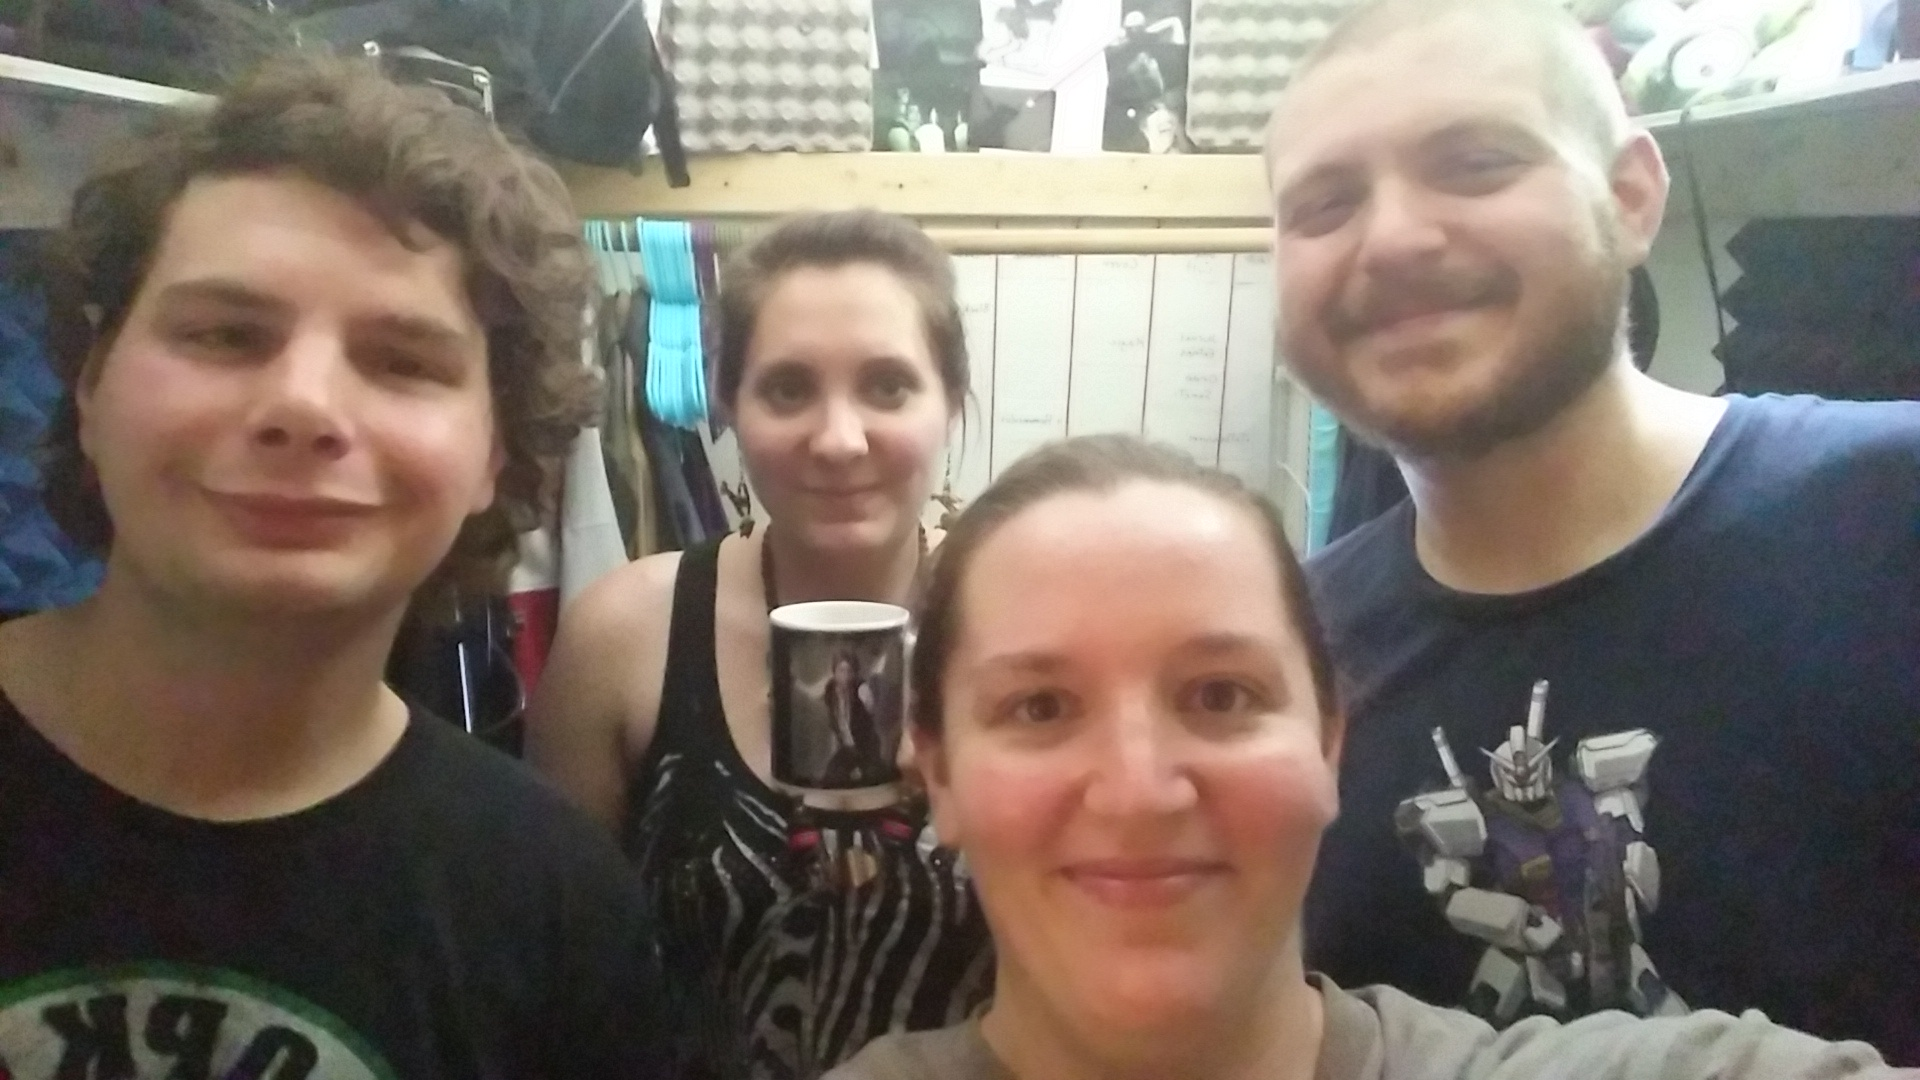 This picture was taken some time around when we would have recorded this episode in July/August. It was hot and we all looked pretty gross afterwards.